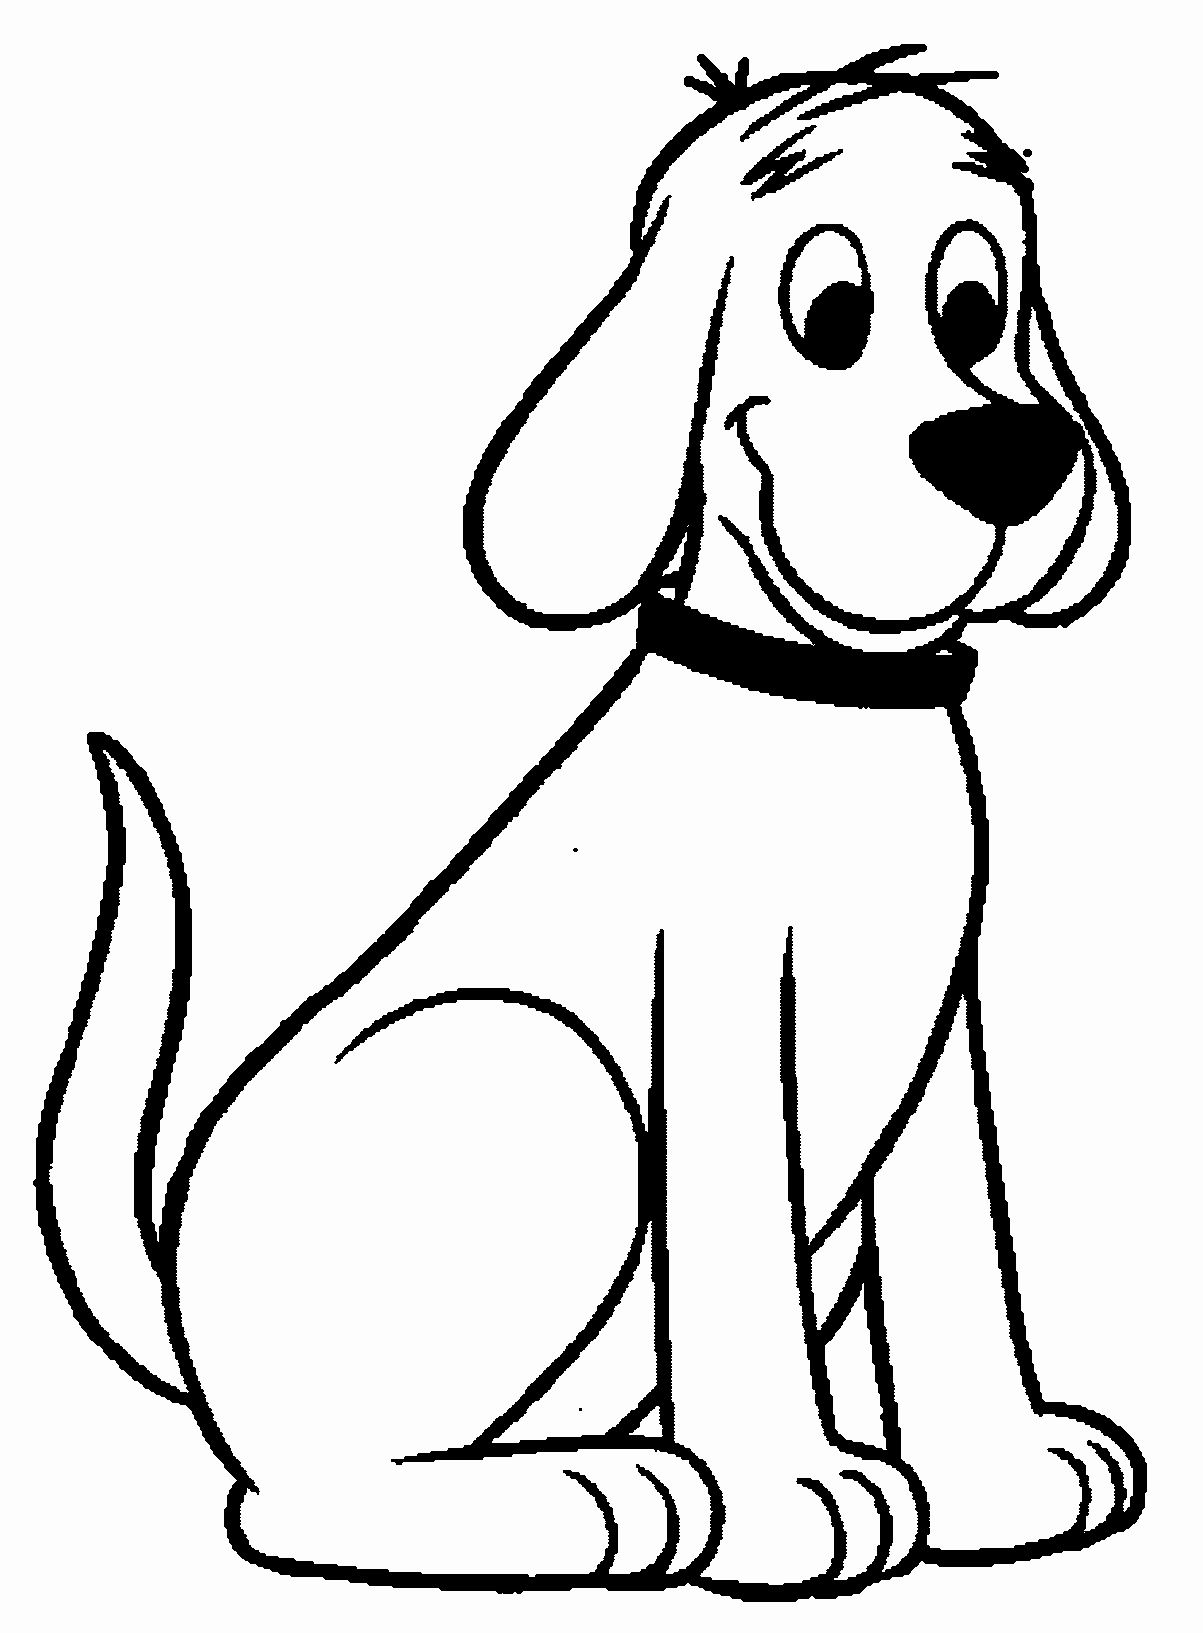 Free Dog Coloring Pages Lovely Clifford The Big Red Dog Coloring Pages Animal Coloring Pages Dog Coloring Page Cartoon Coloring Pages